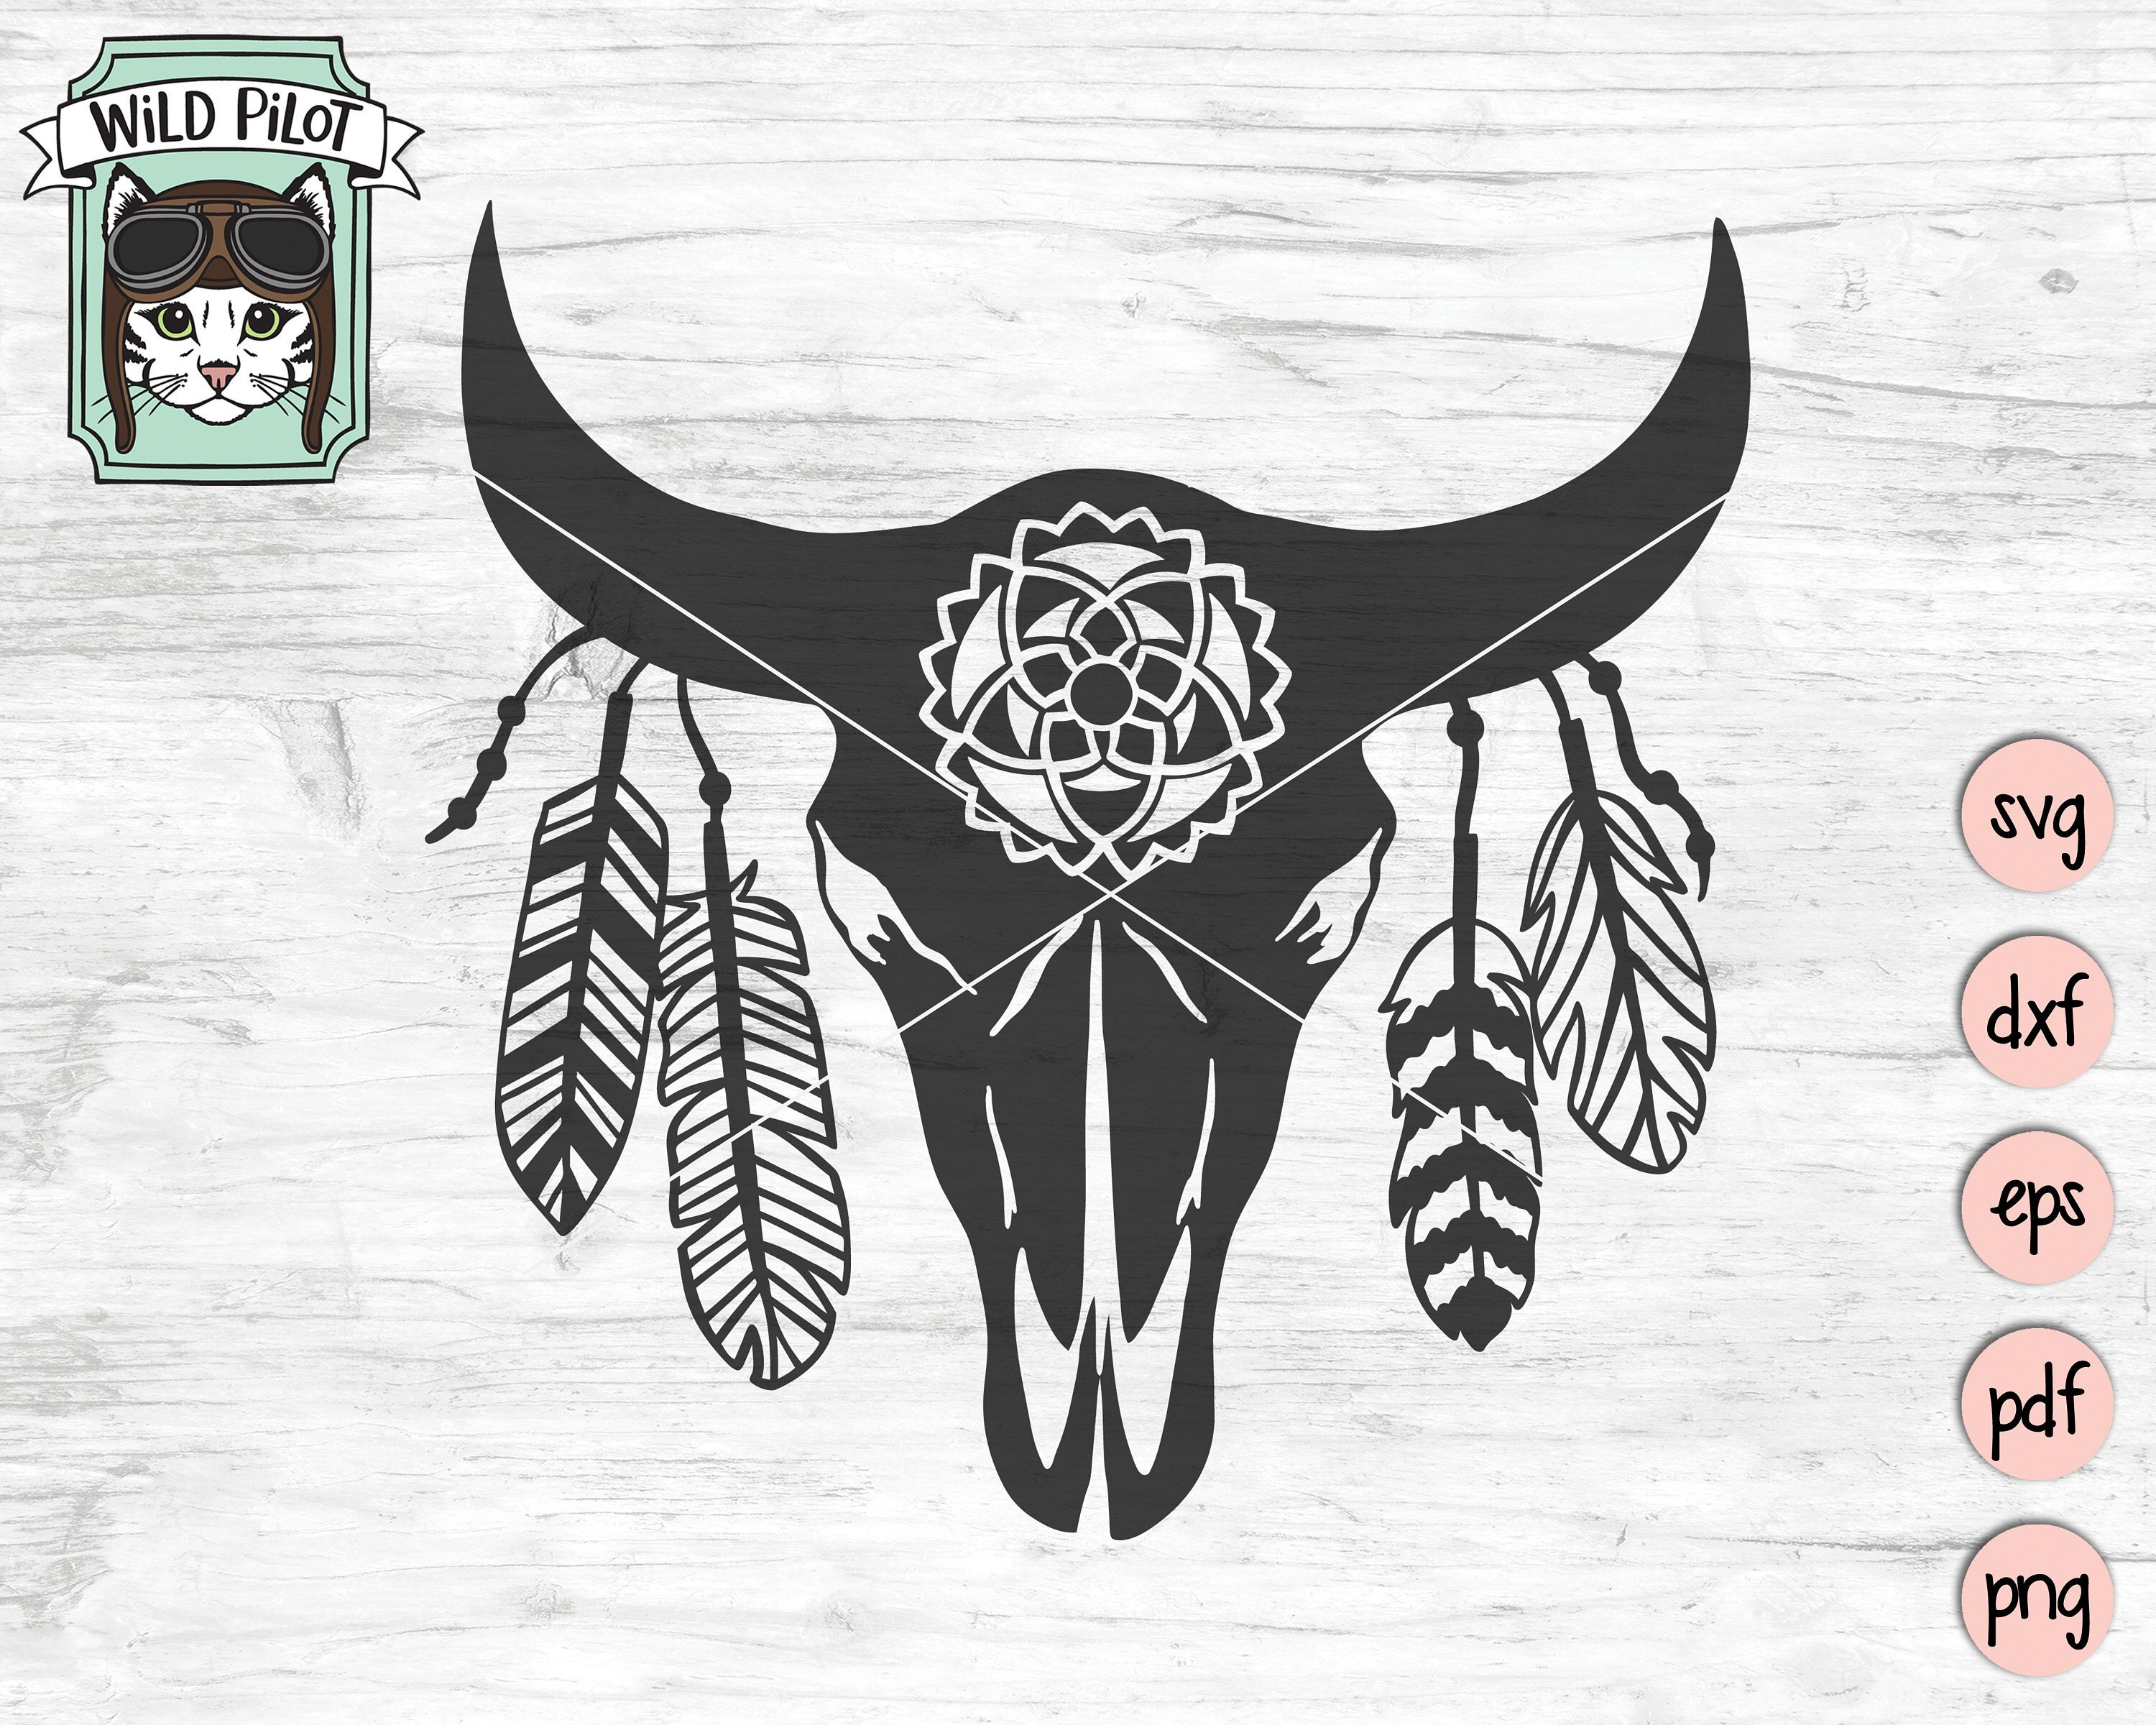 Cow Skull with Feathers SVG, Cow Skull svg file, Native